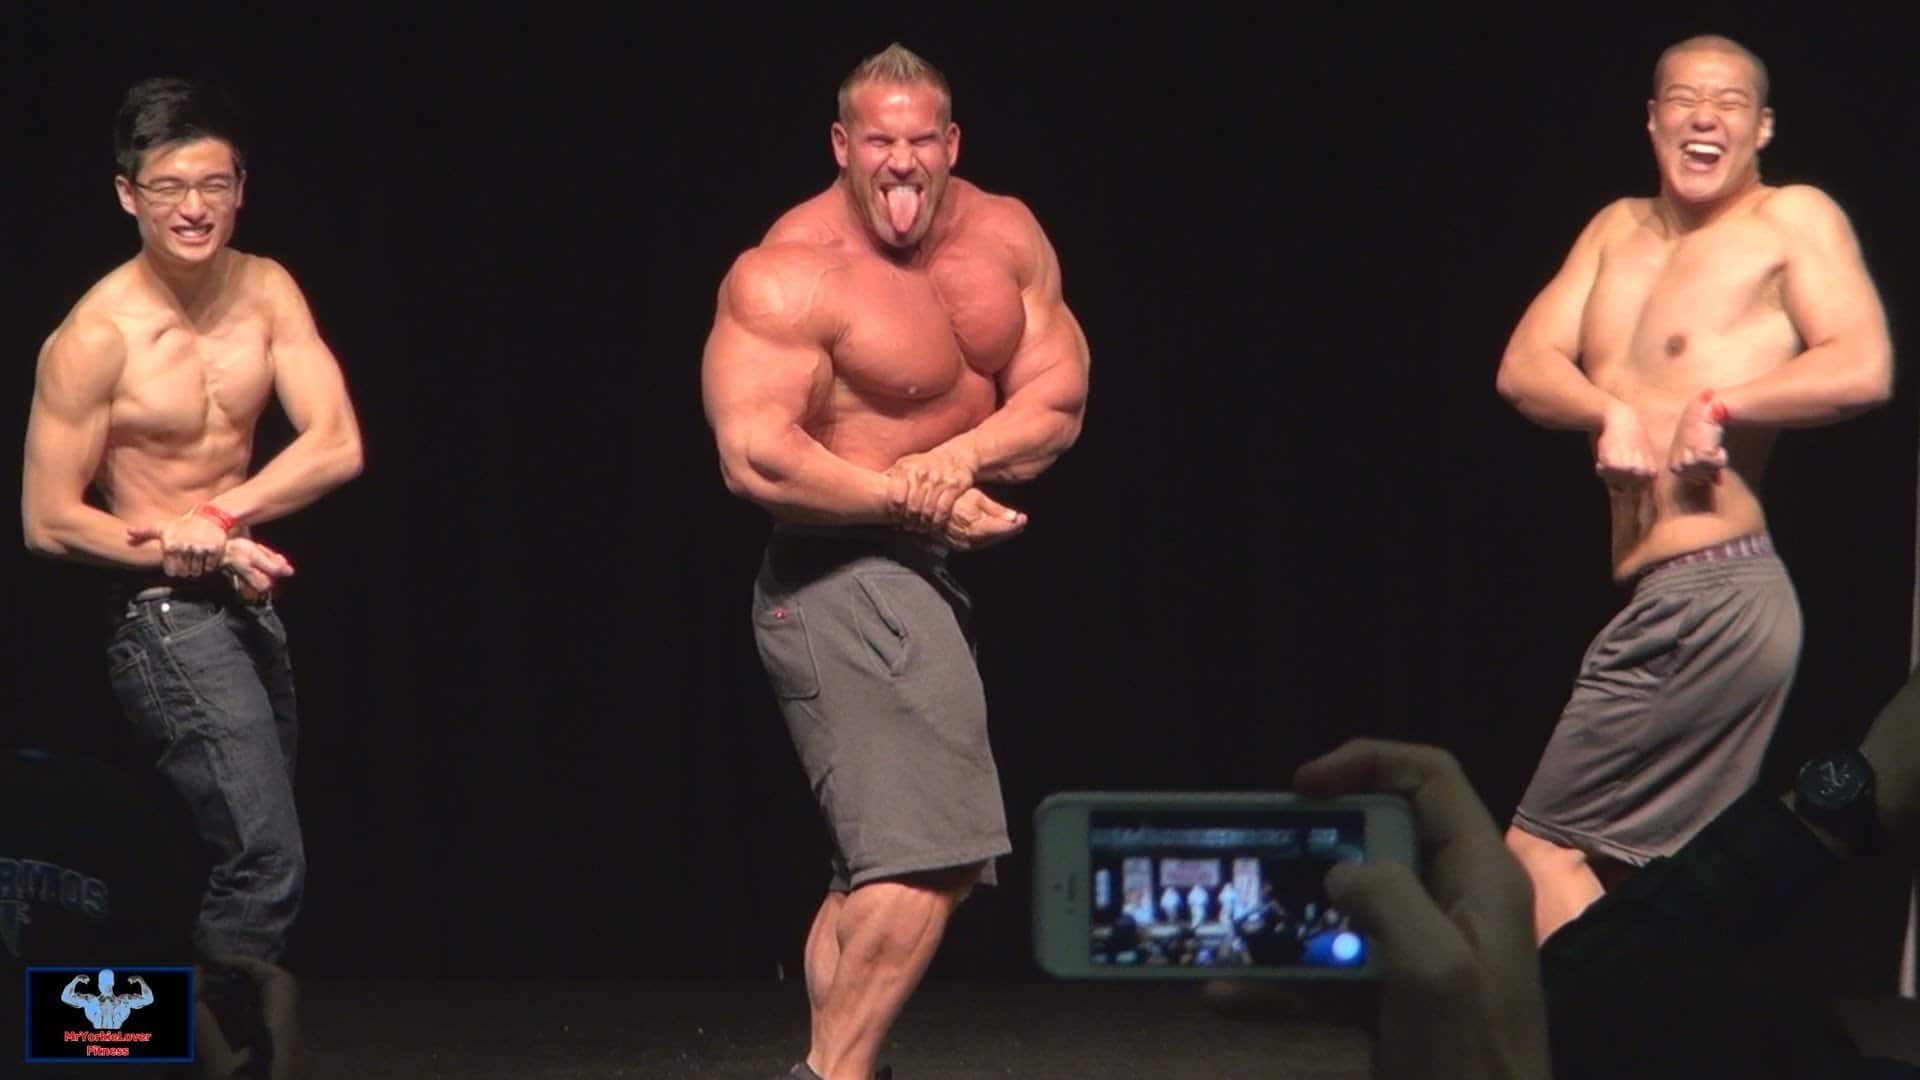 WATCH: Jay Cutler Posing With 2 Gay Fans – Fitness Volt